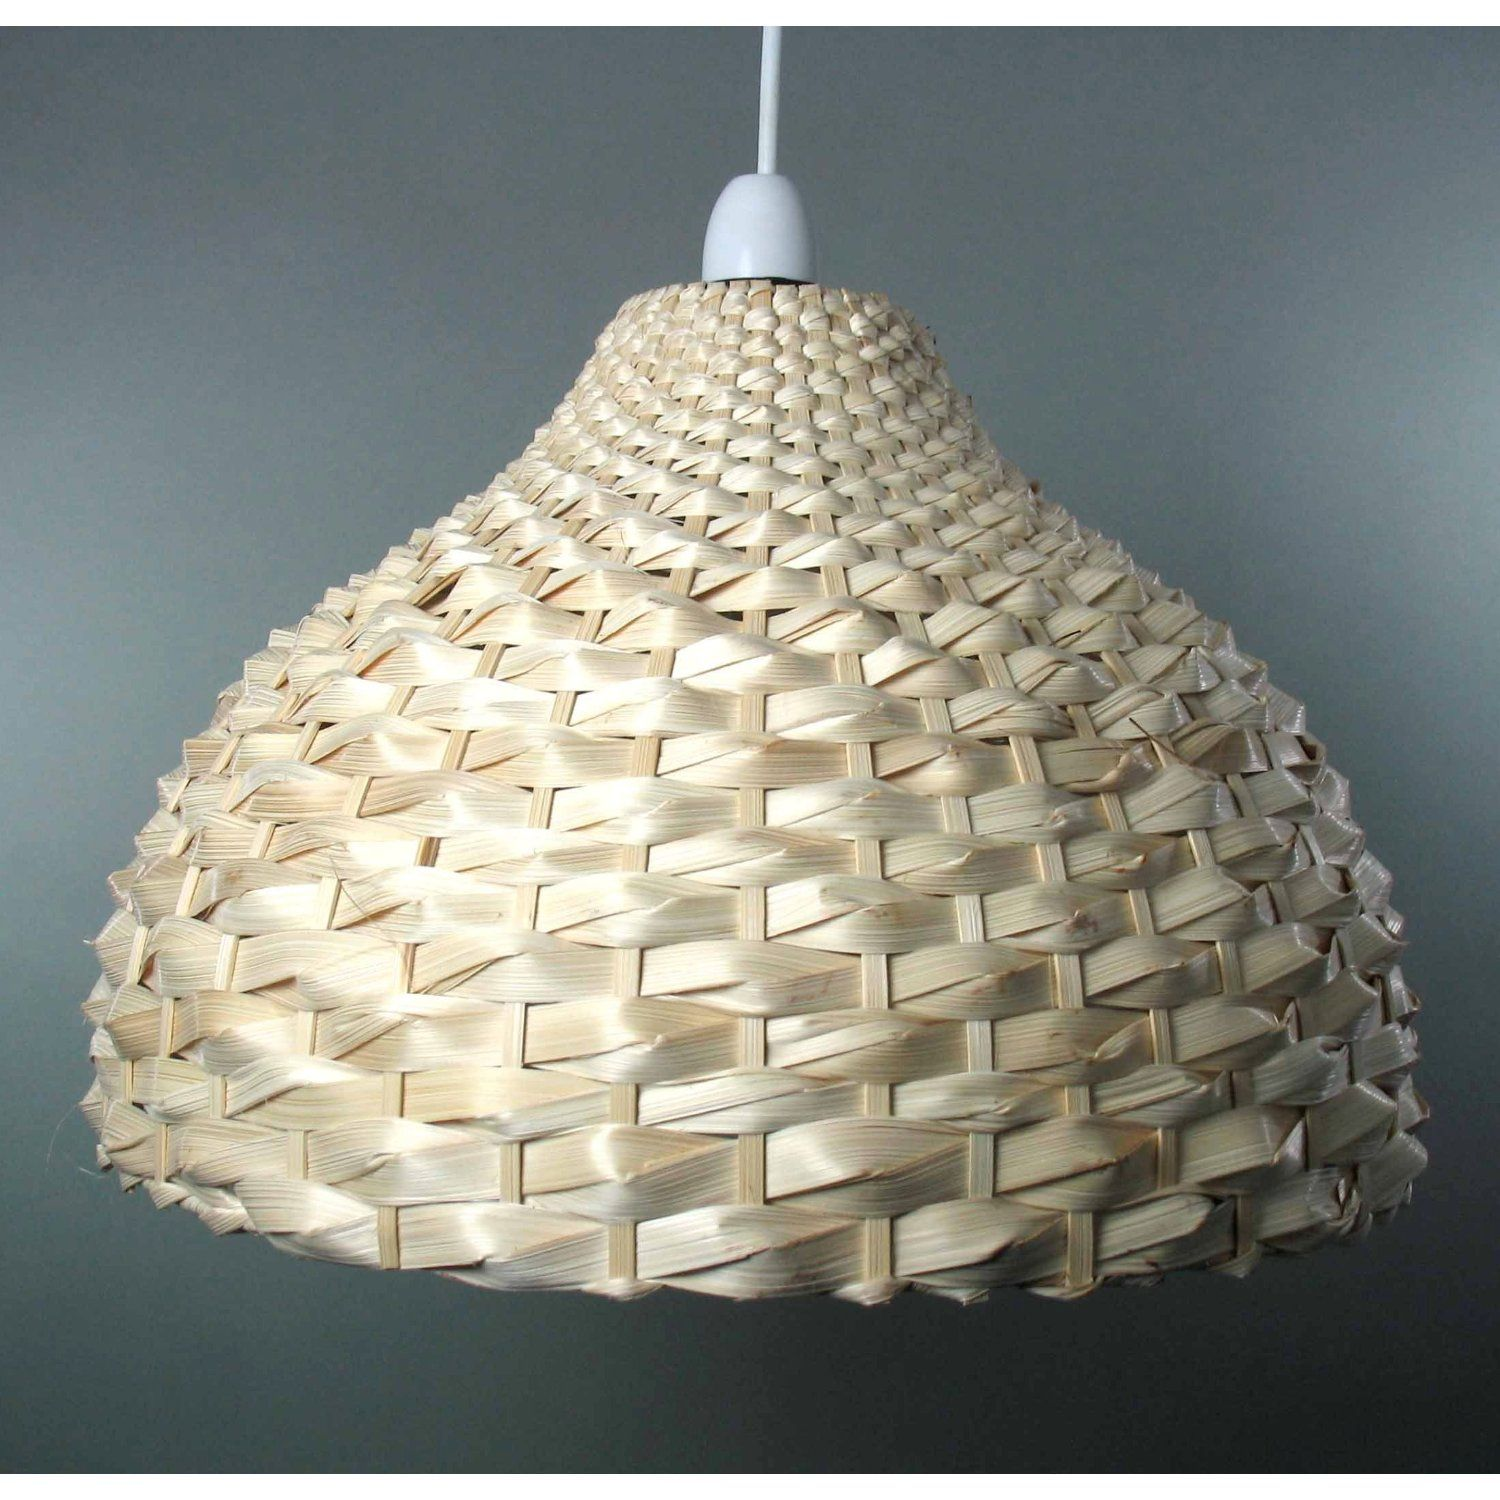 Natural bamboo weave dome shaped ceiling light shade easy fit natural bamboo weave dome shaped ceiling light shade easy fit pendant amazon mozeypictures Choice Image